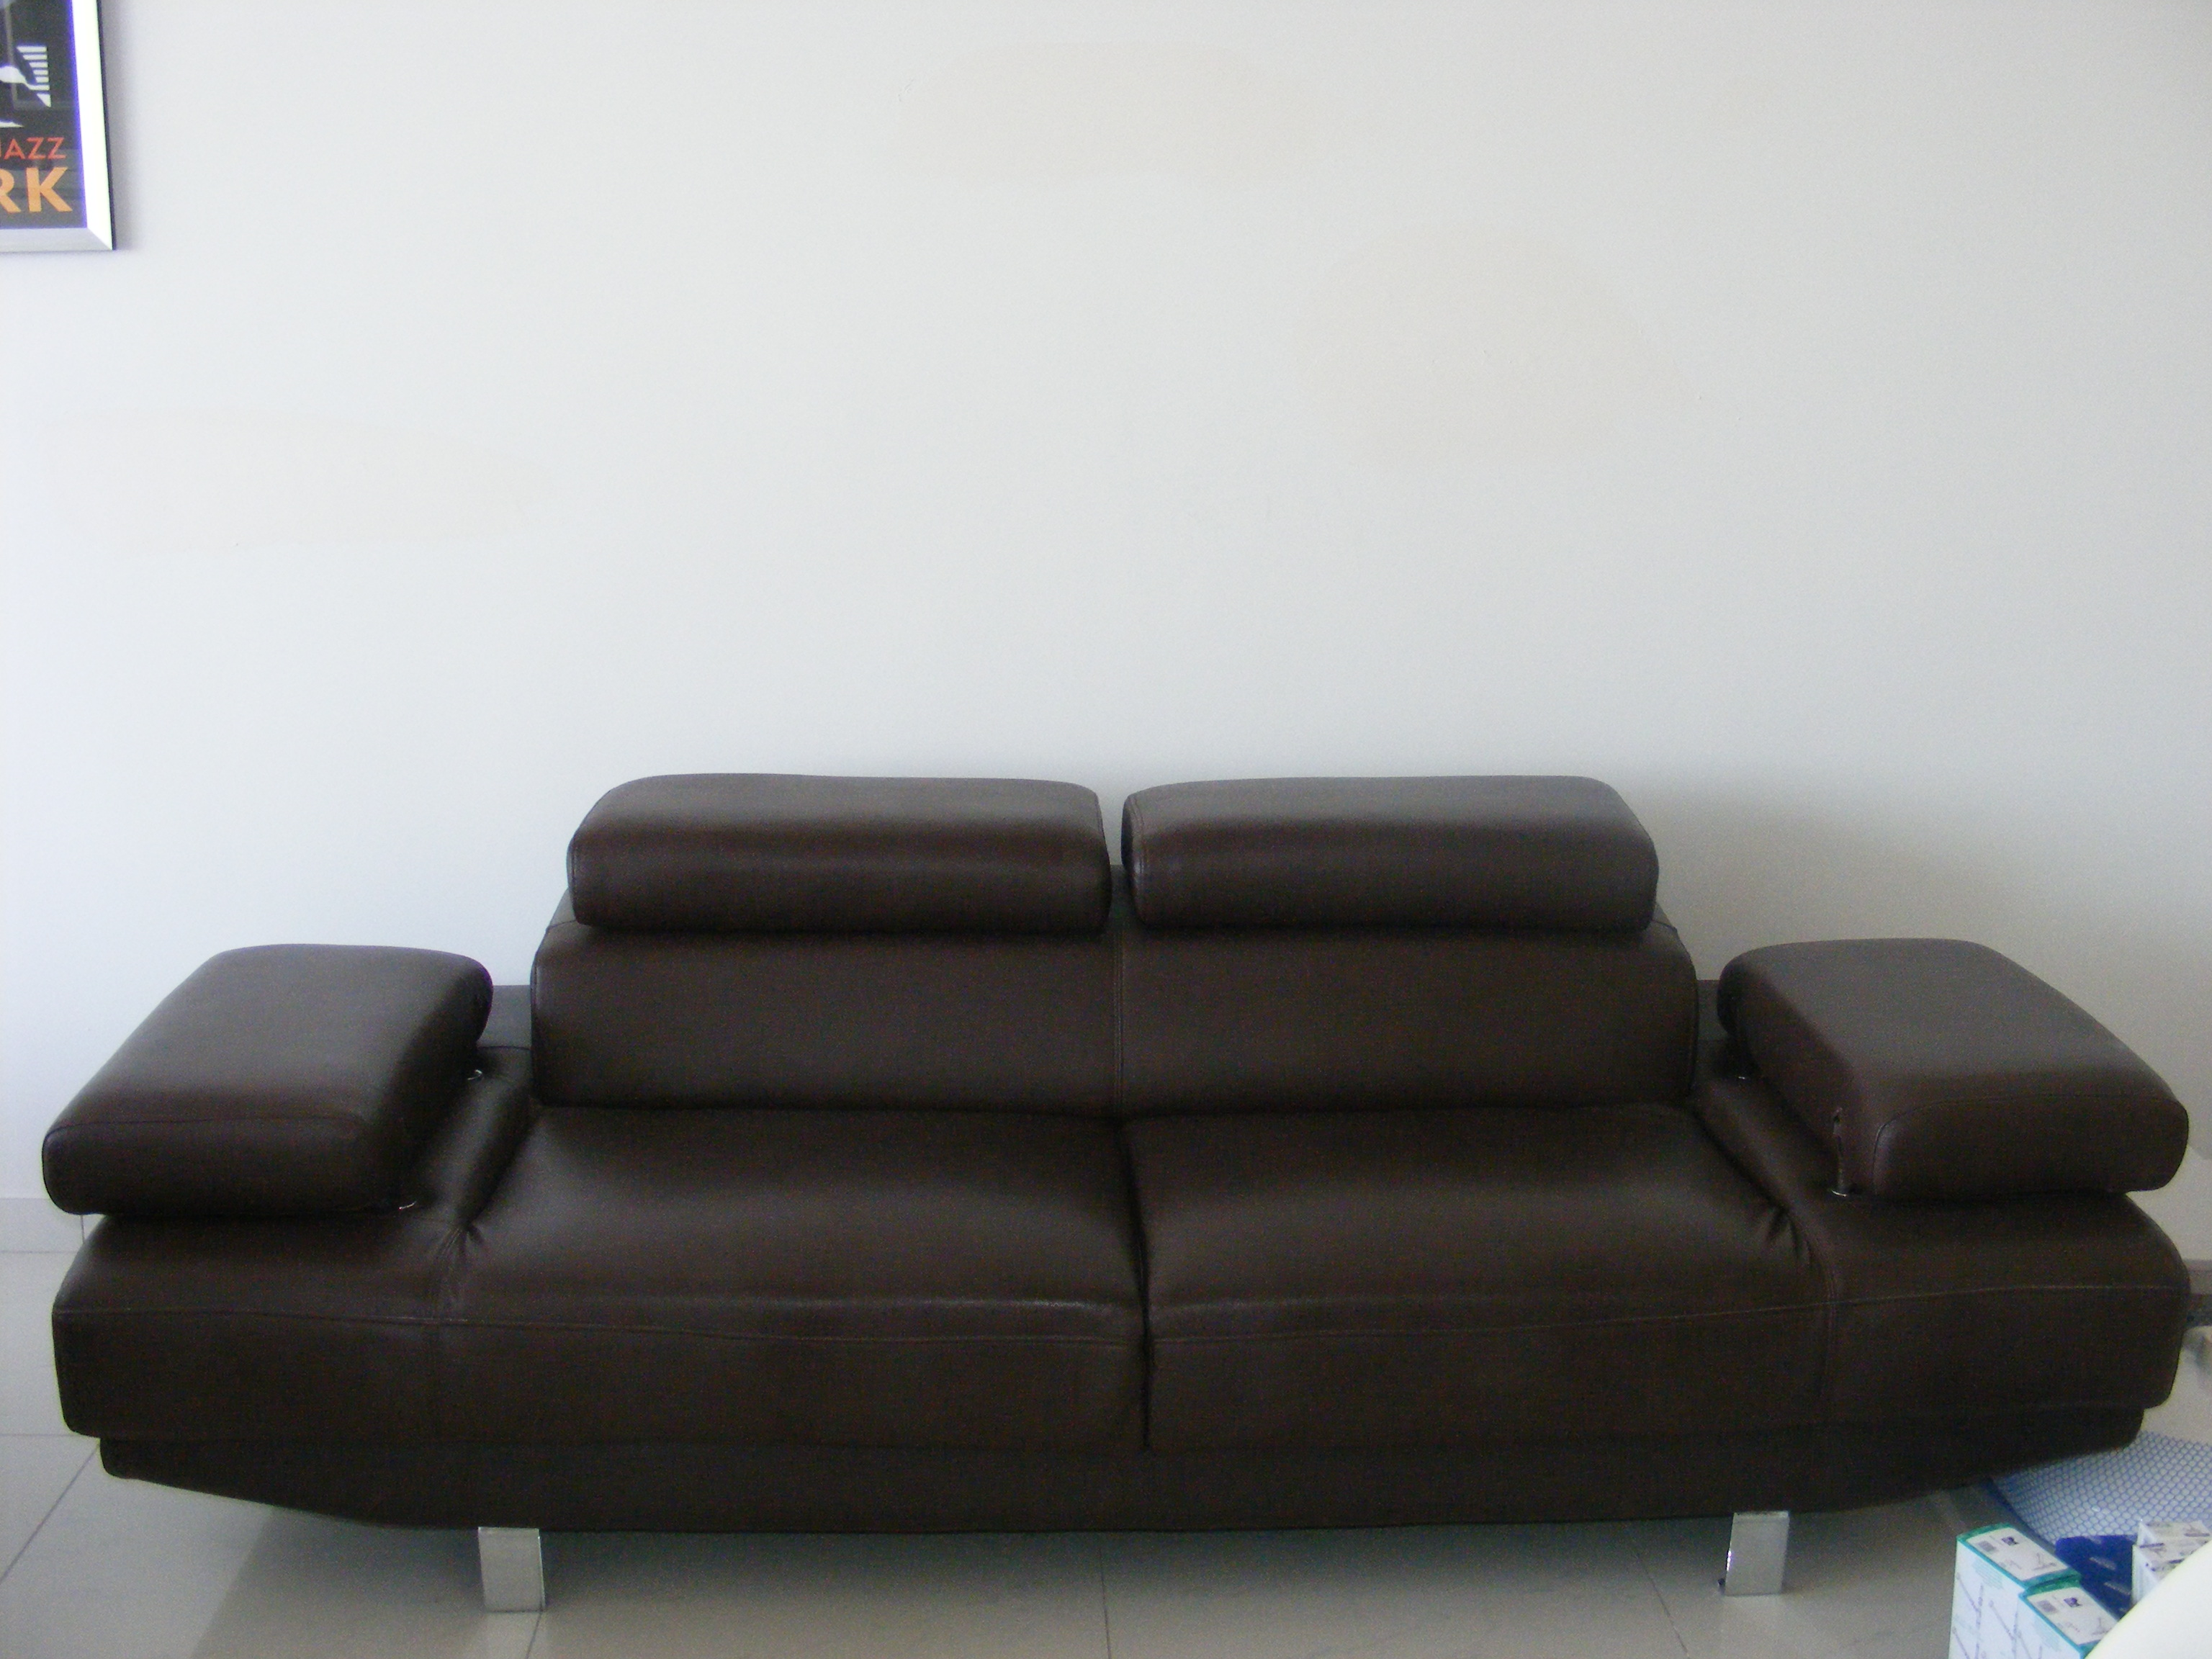 Brown leather sofa for sale in malta malta classified ads for Local furniture for sale